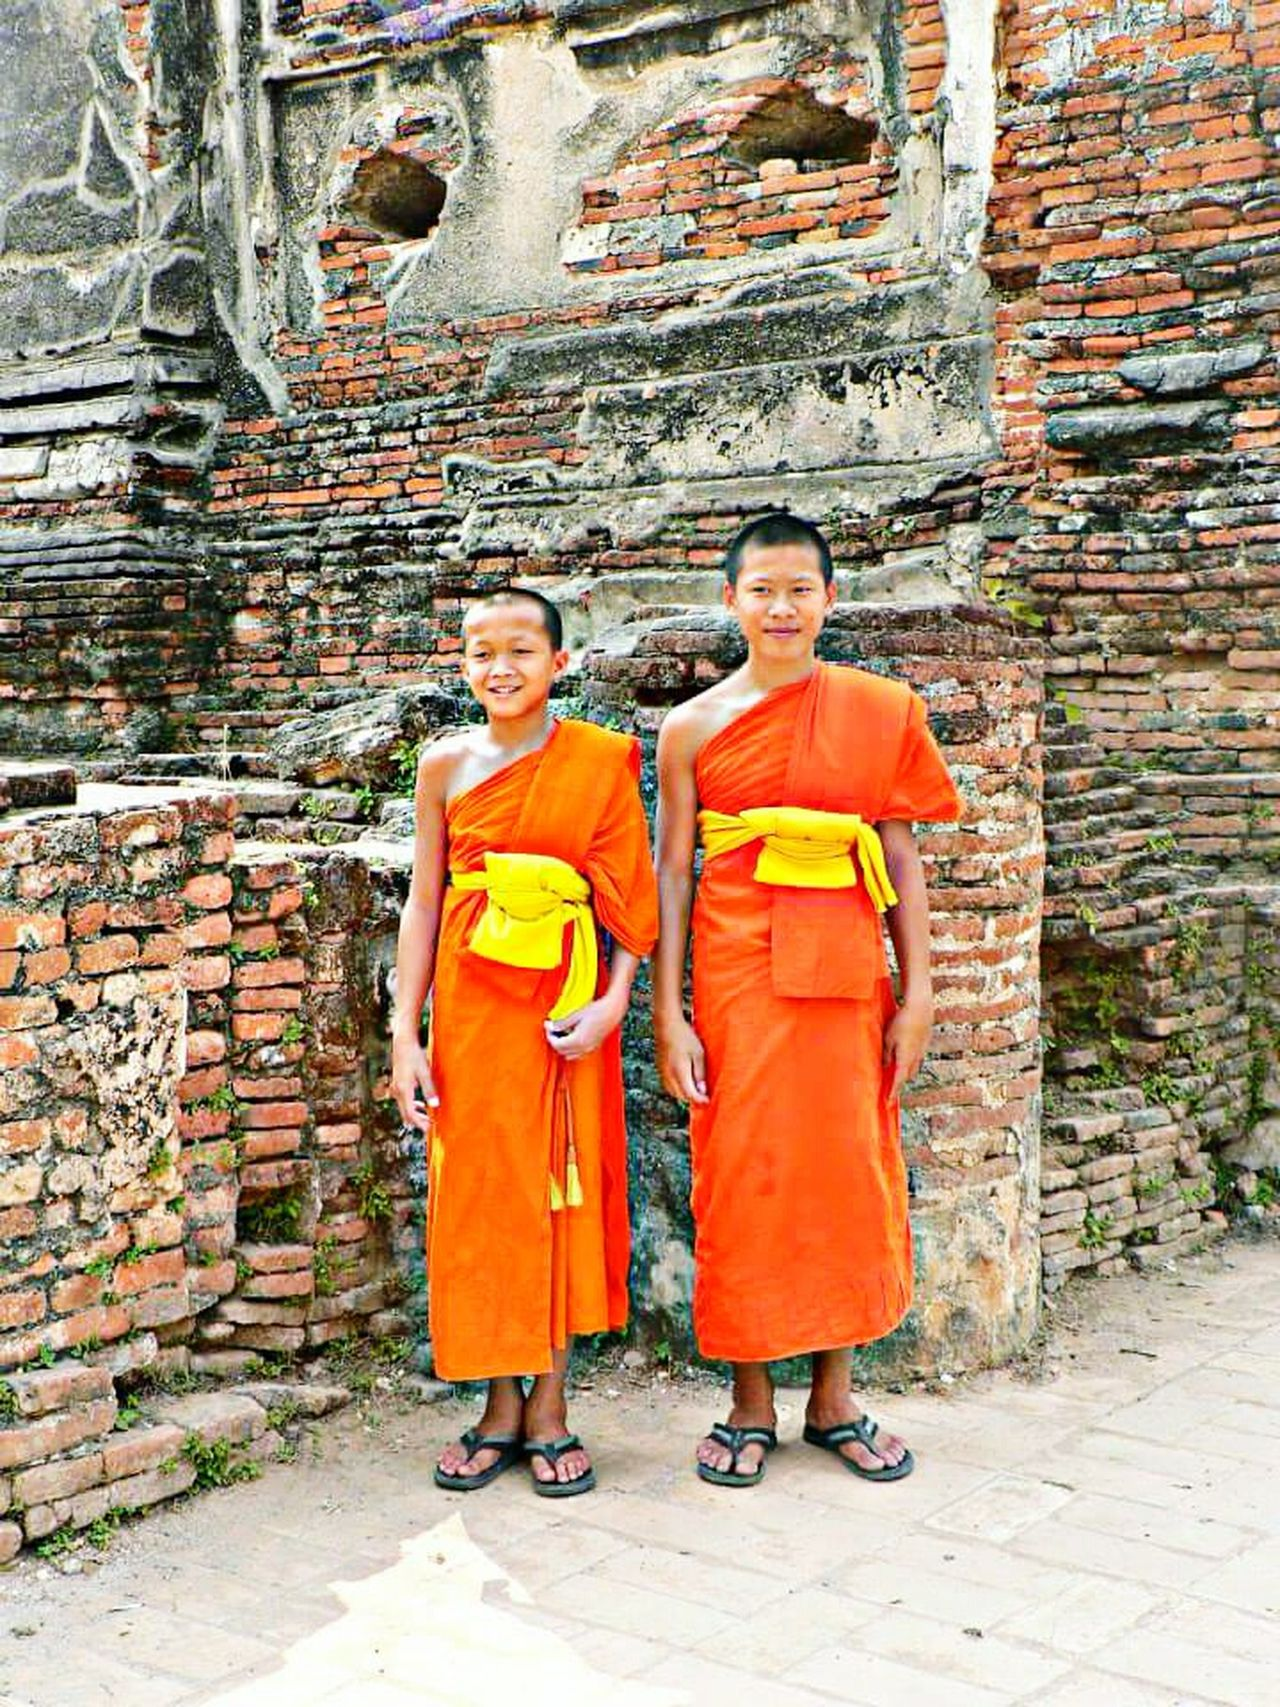 Looking At Camera Portrait Adult Full Length Two People Standing Adults Only Togetherness Outdoors People Day Smiling Men Architecture Spirituality Religion Buddhist Monks Headwear Young Adult